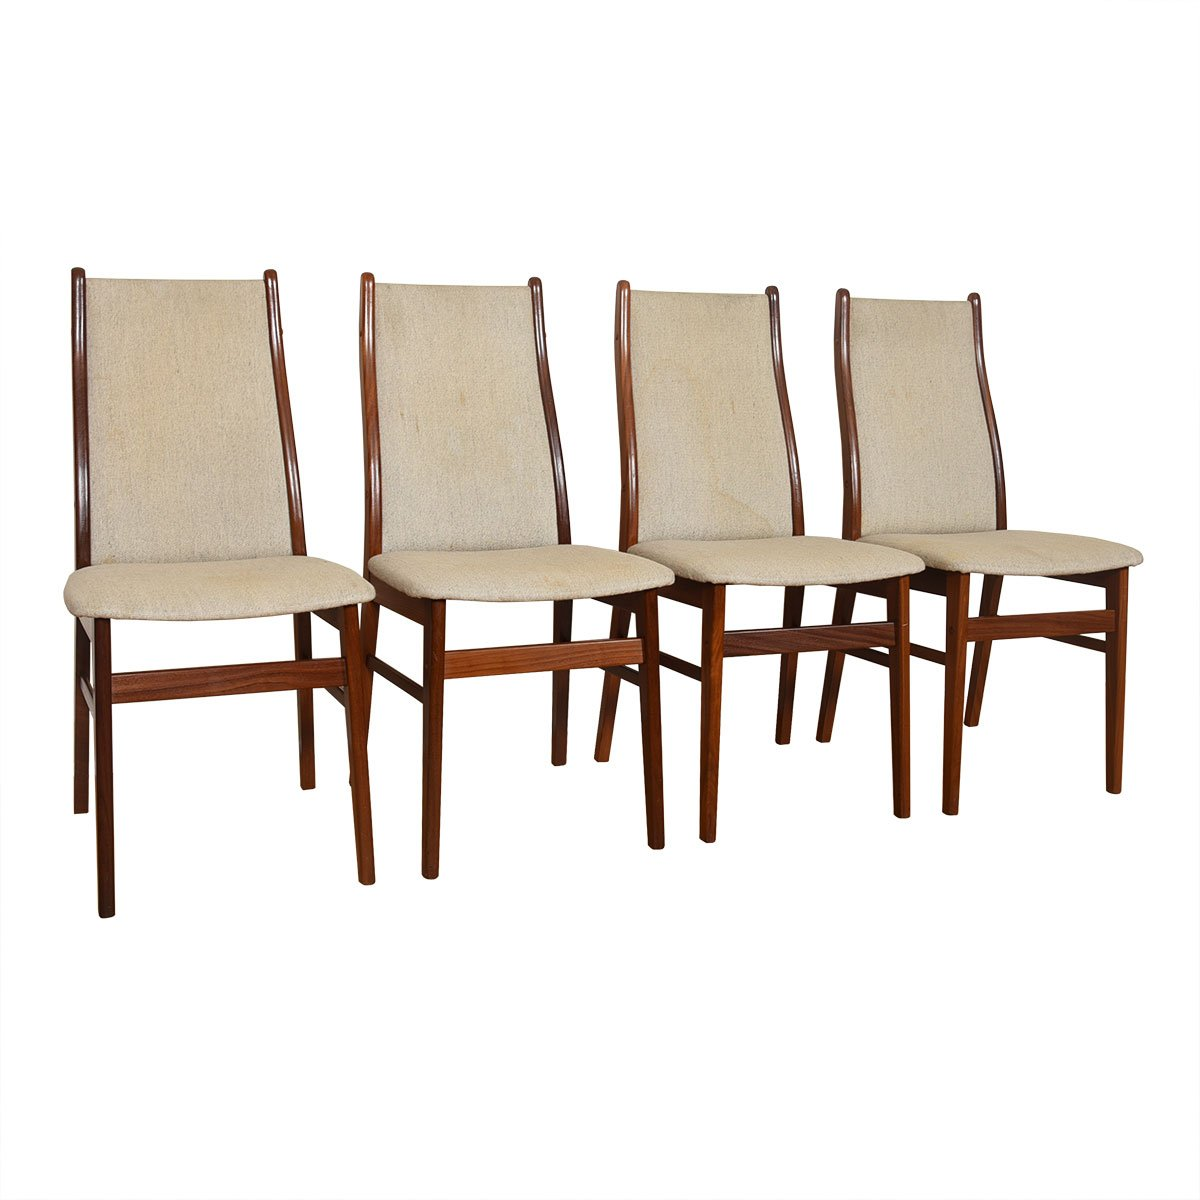 Set of 4 Danish Modern Teak Upholstered Dining Chairs